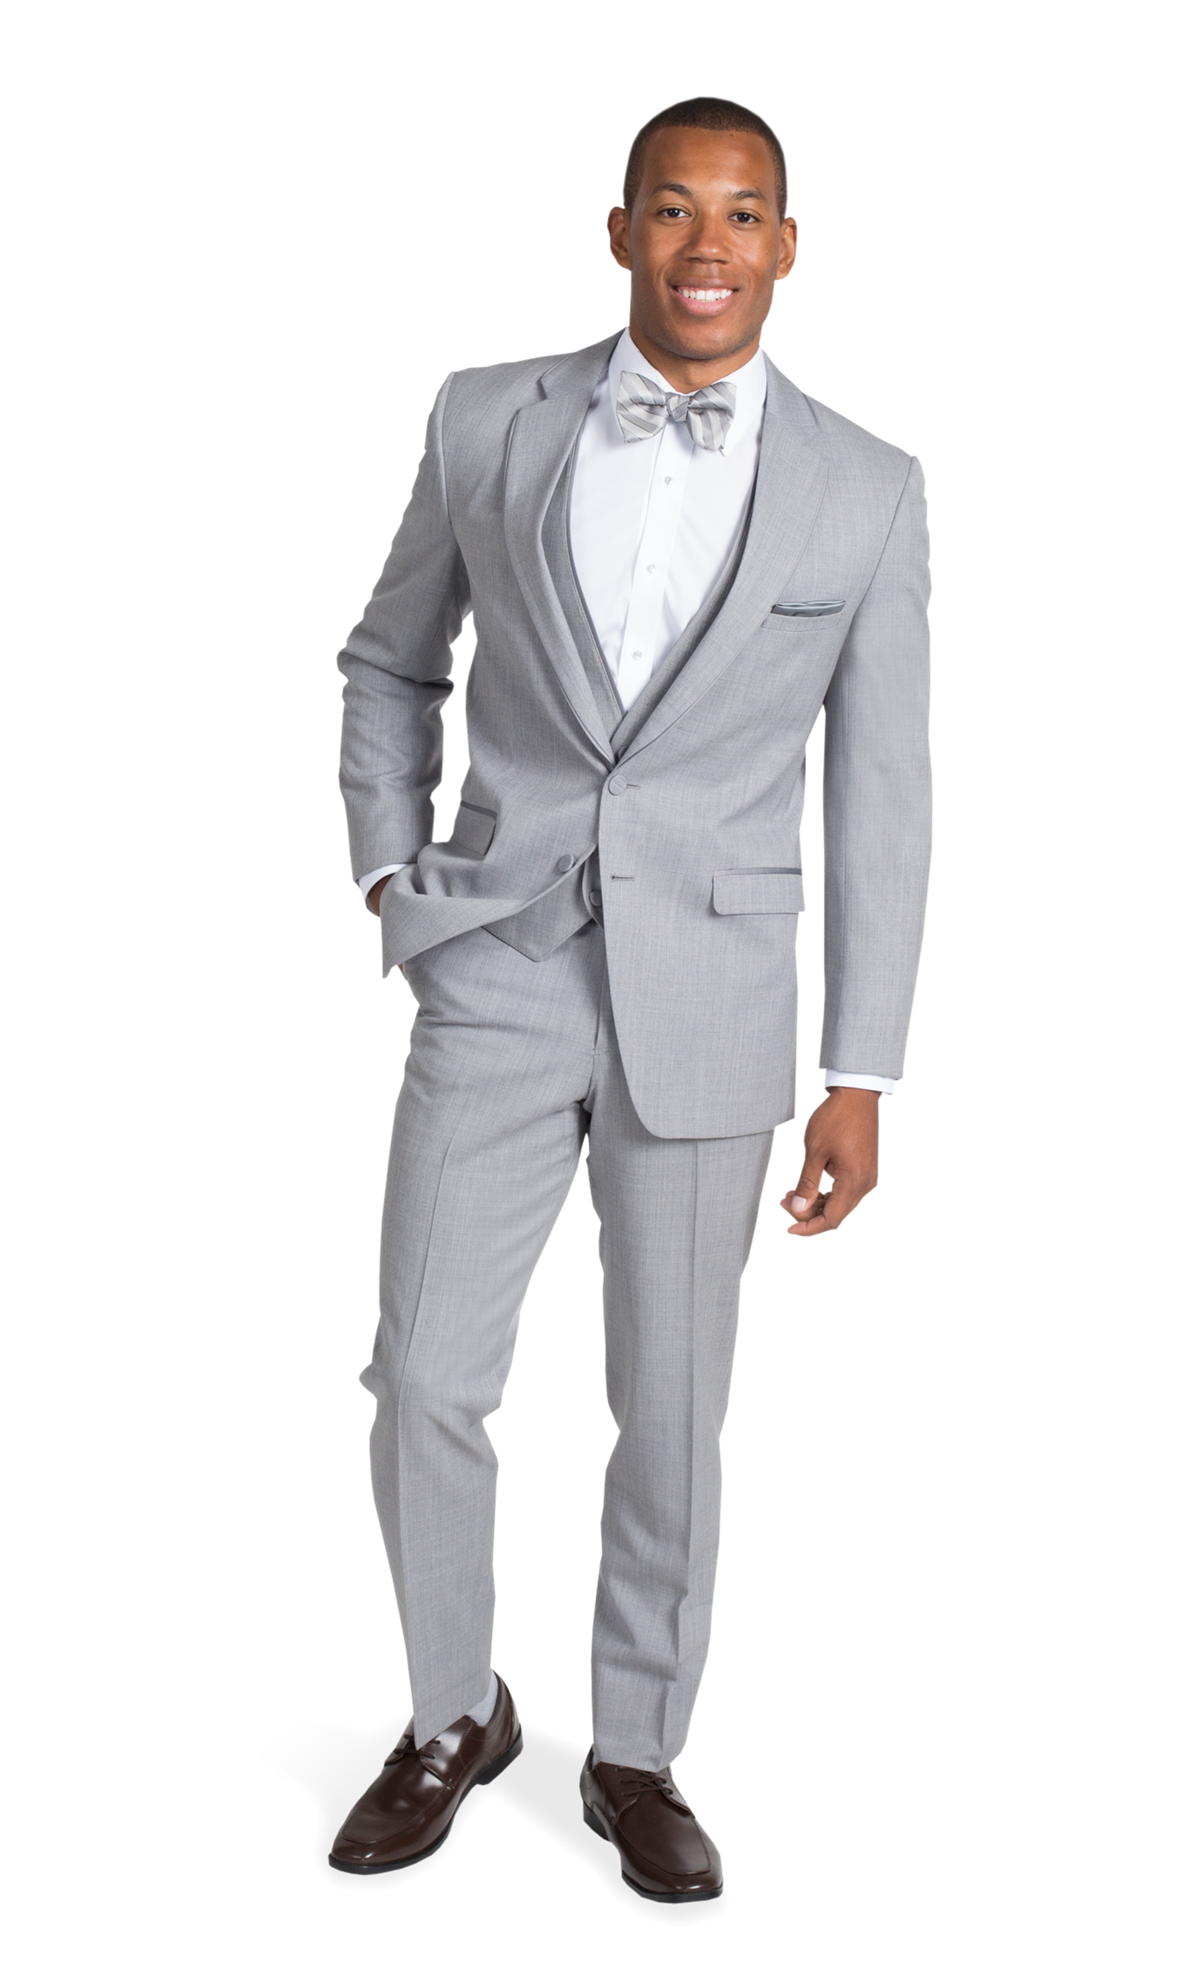 Lapel clip charcoal suit. Heather gray by allure